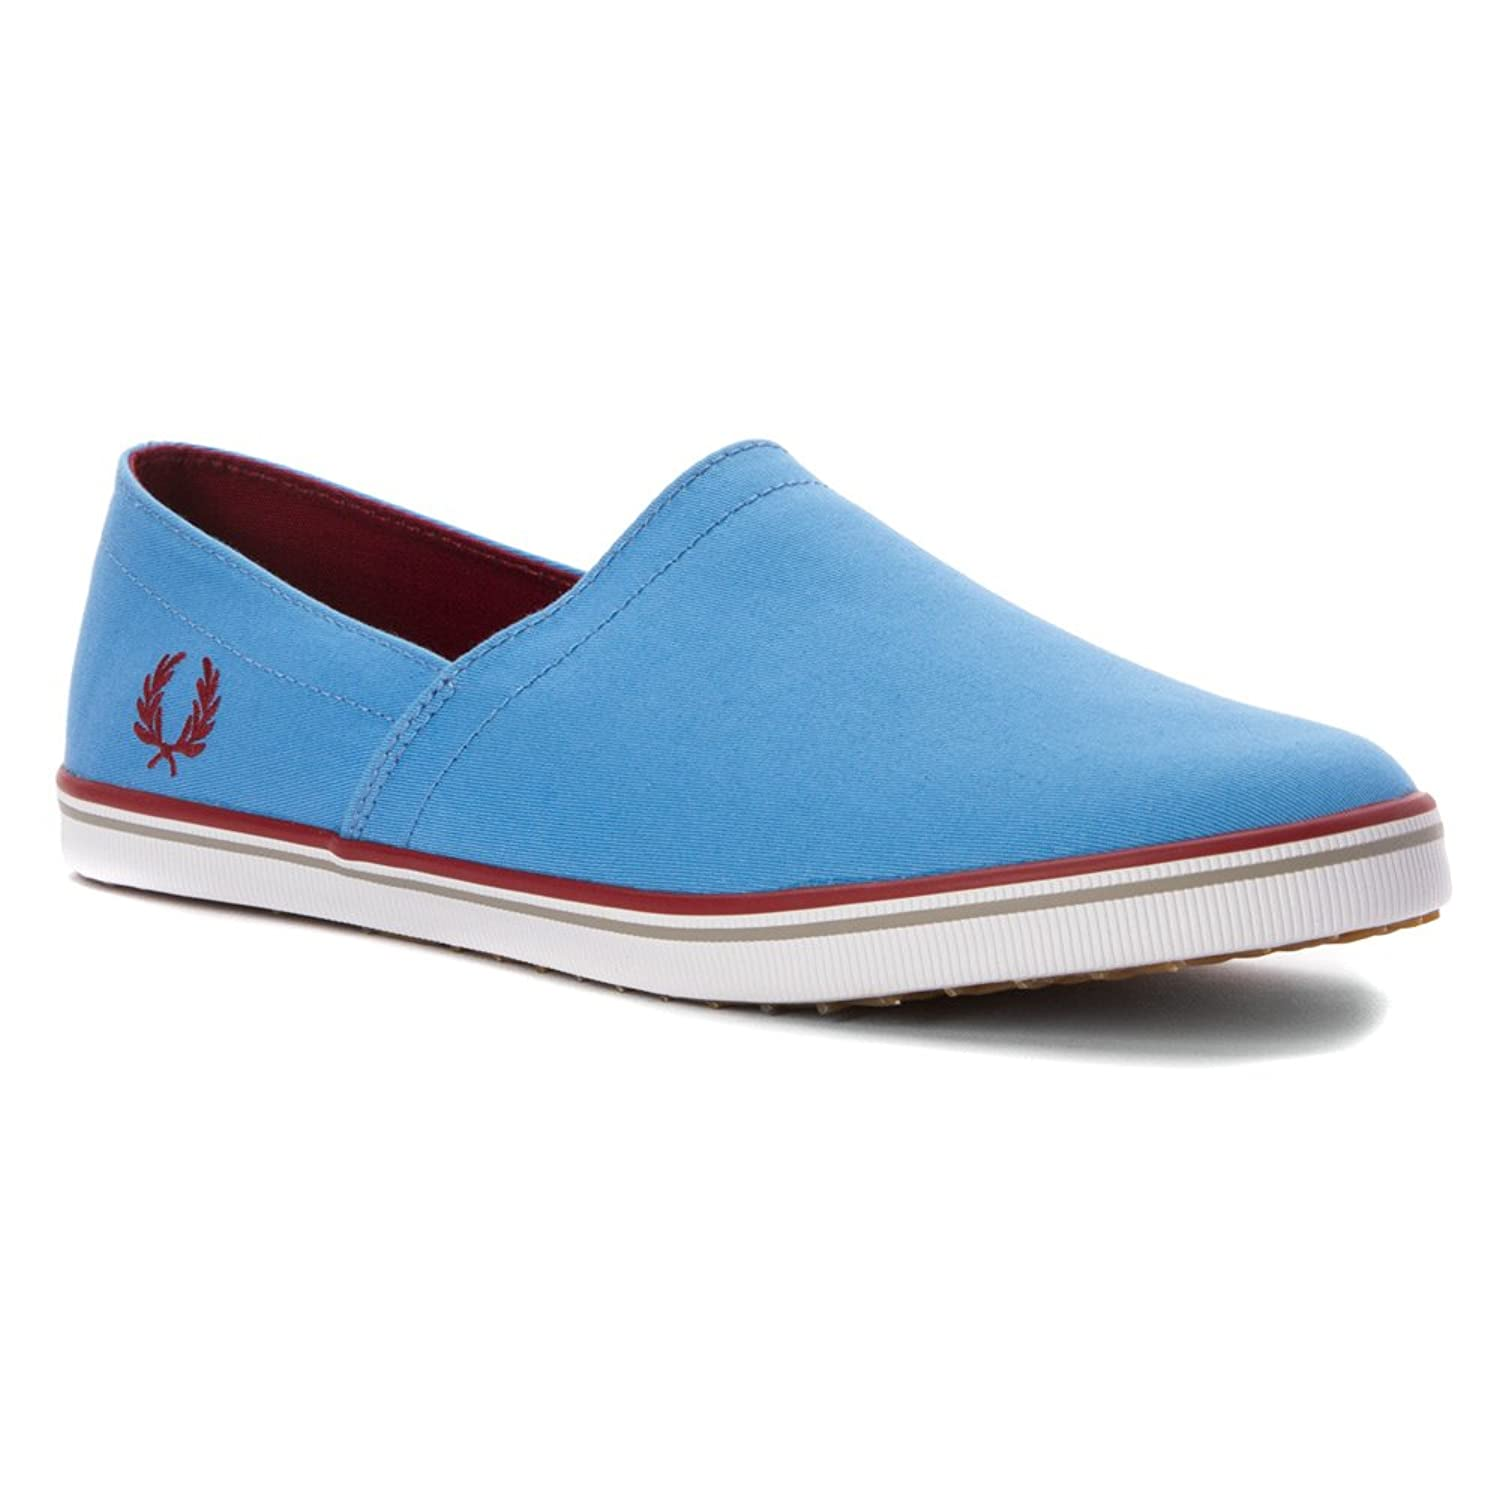 Skate shoes kingston - Amazon Com Fred Perry Men S Kingston Stampdown Sneaker Loafers Shoes Shoes